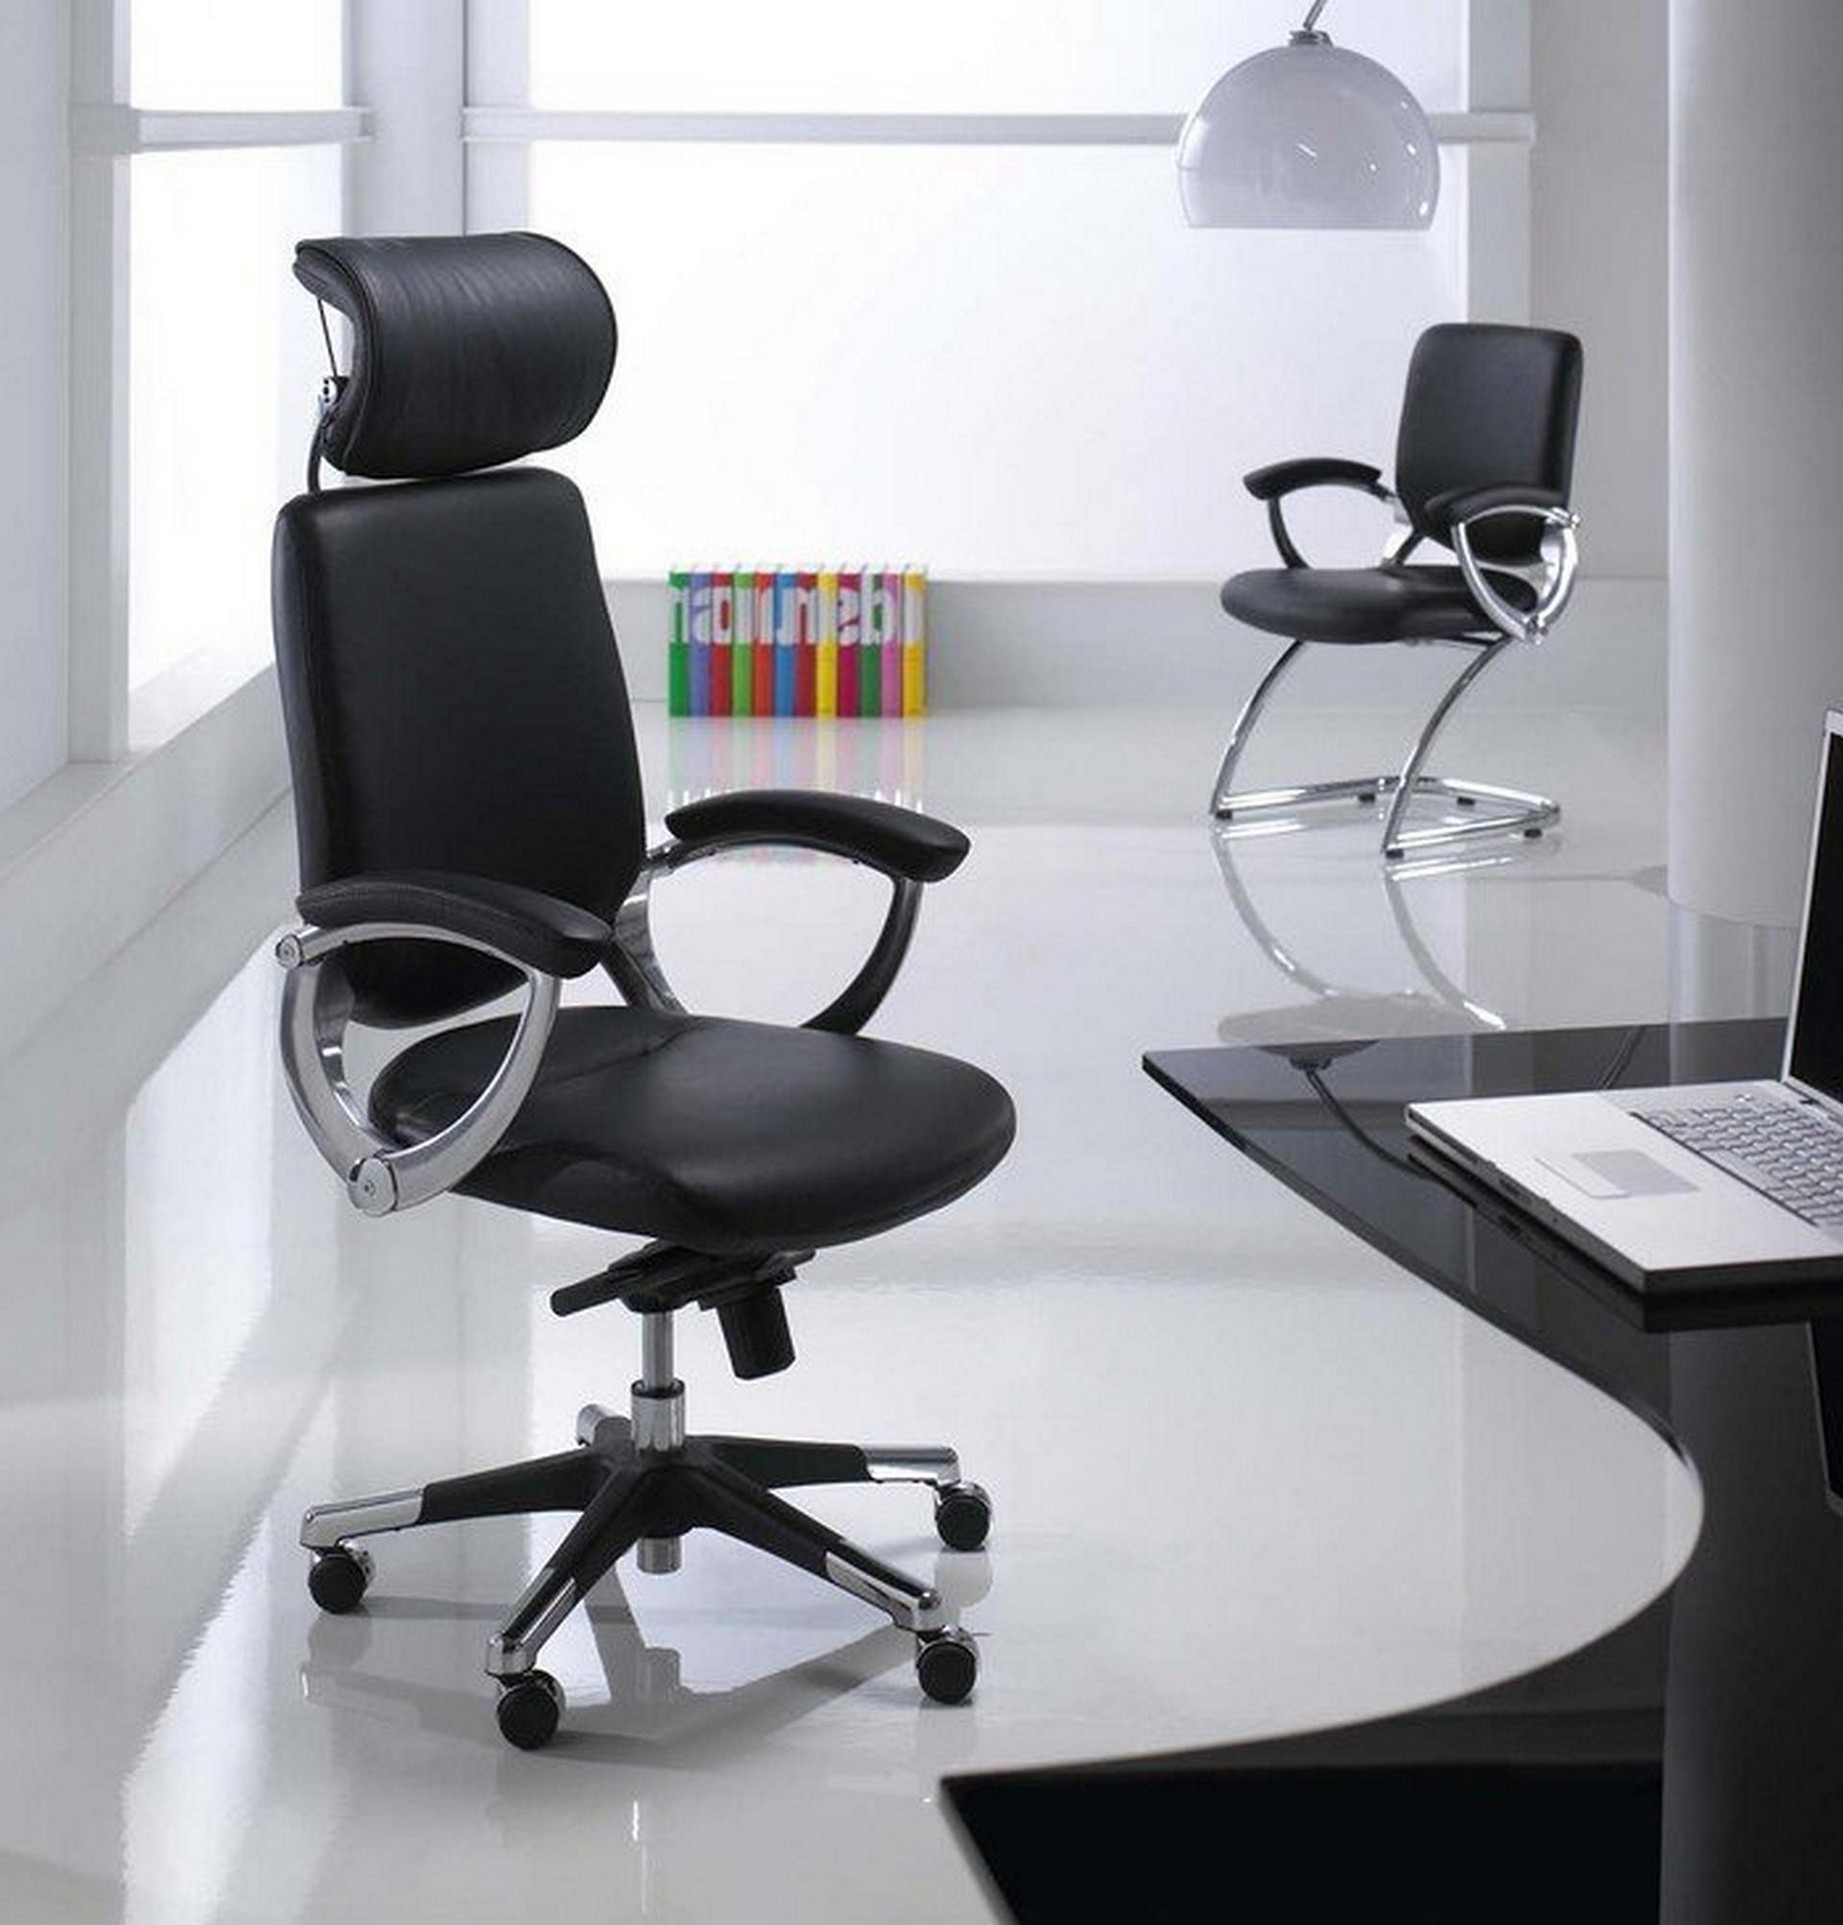 Most Ergonomic Office Chair 9 Different Ways To Make Your Office Chair More Comfortable